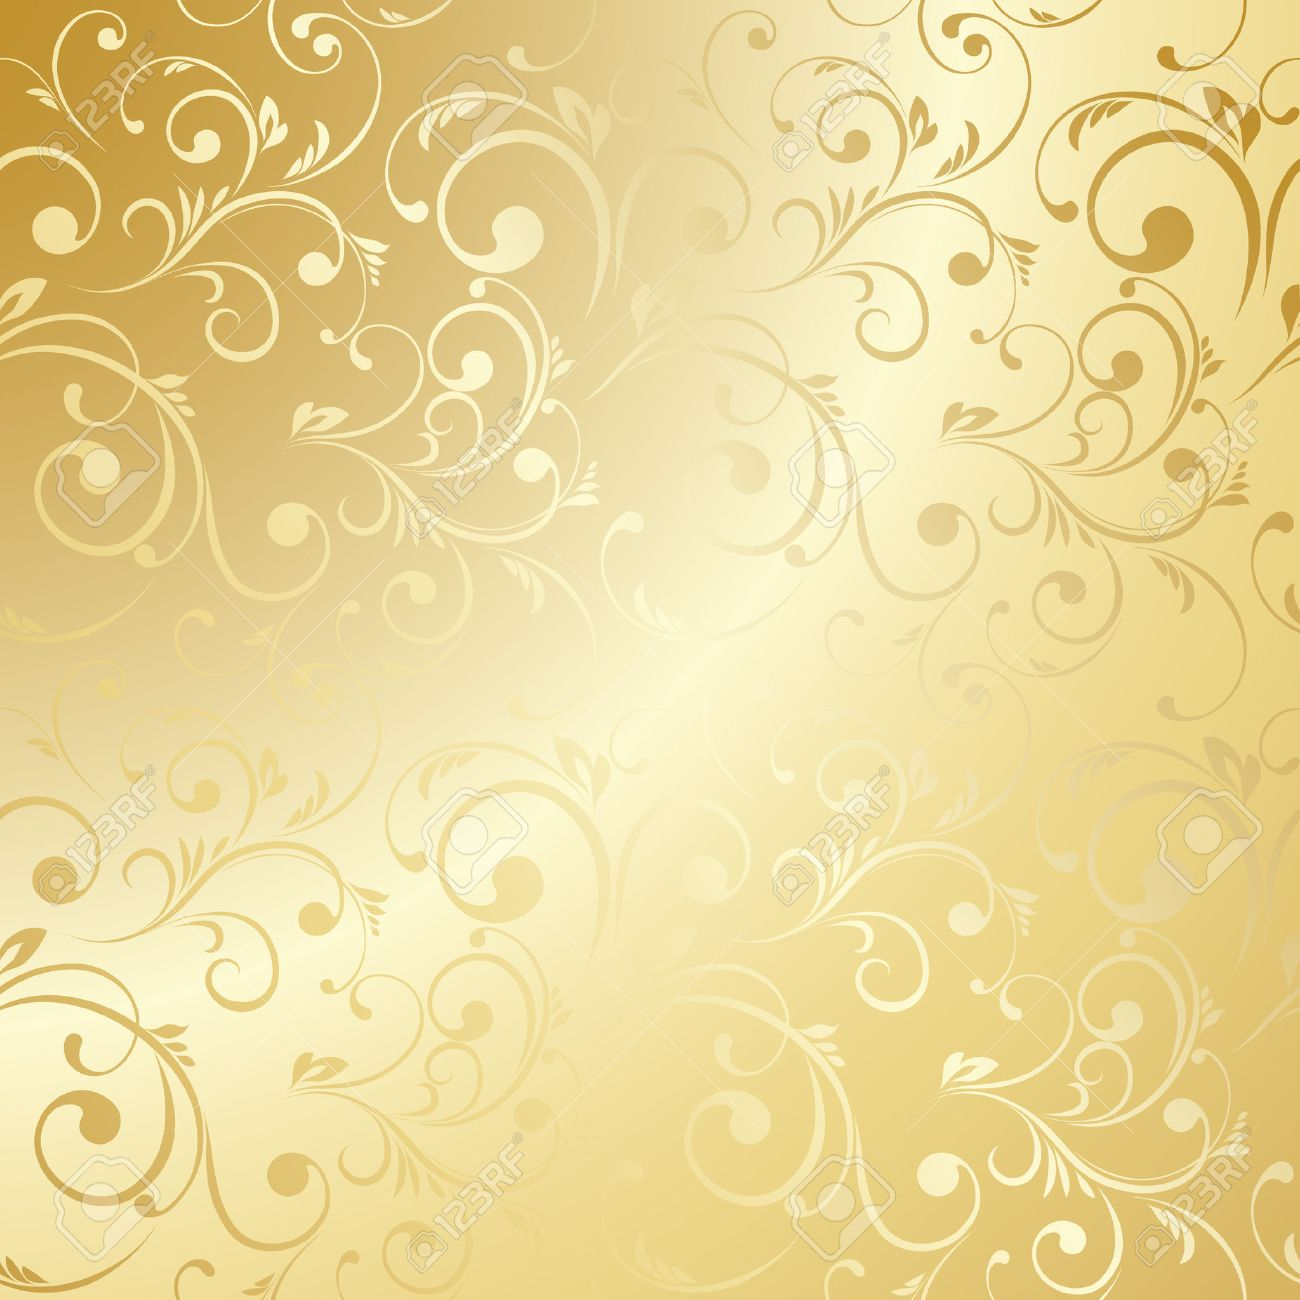 Luxury Golden Wallpaper Vintage Floral Pattern Vector Background Royalty Free Cliparts Vectors And Stock Illustration Image 44721832